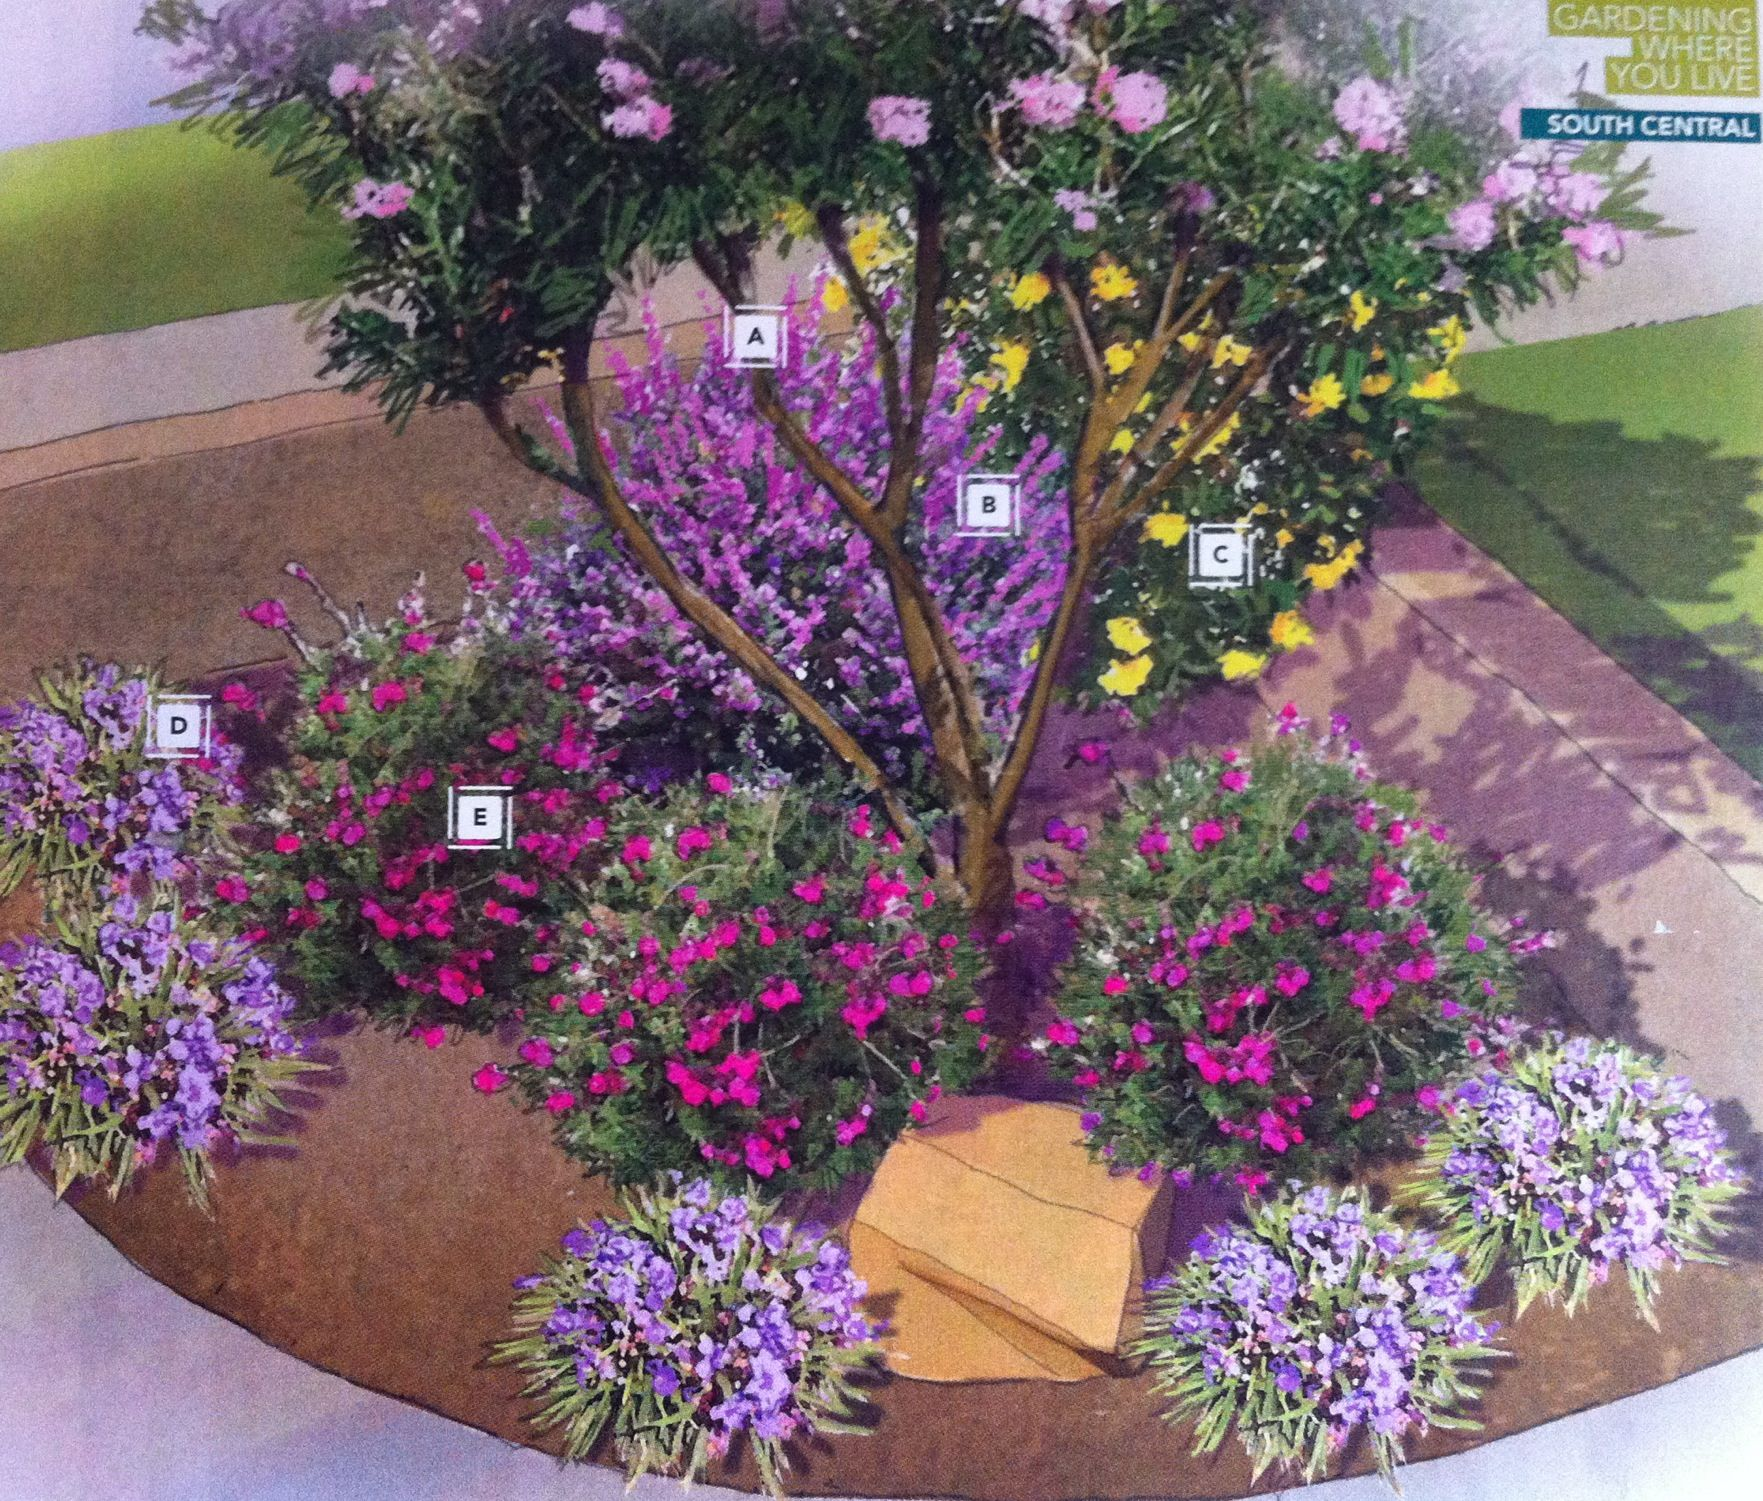 Awesome Cozy Corner Garden Plan By Lowes: (A) Desert Willow (B) Texas